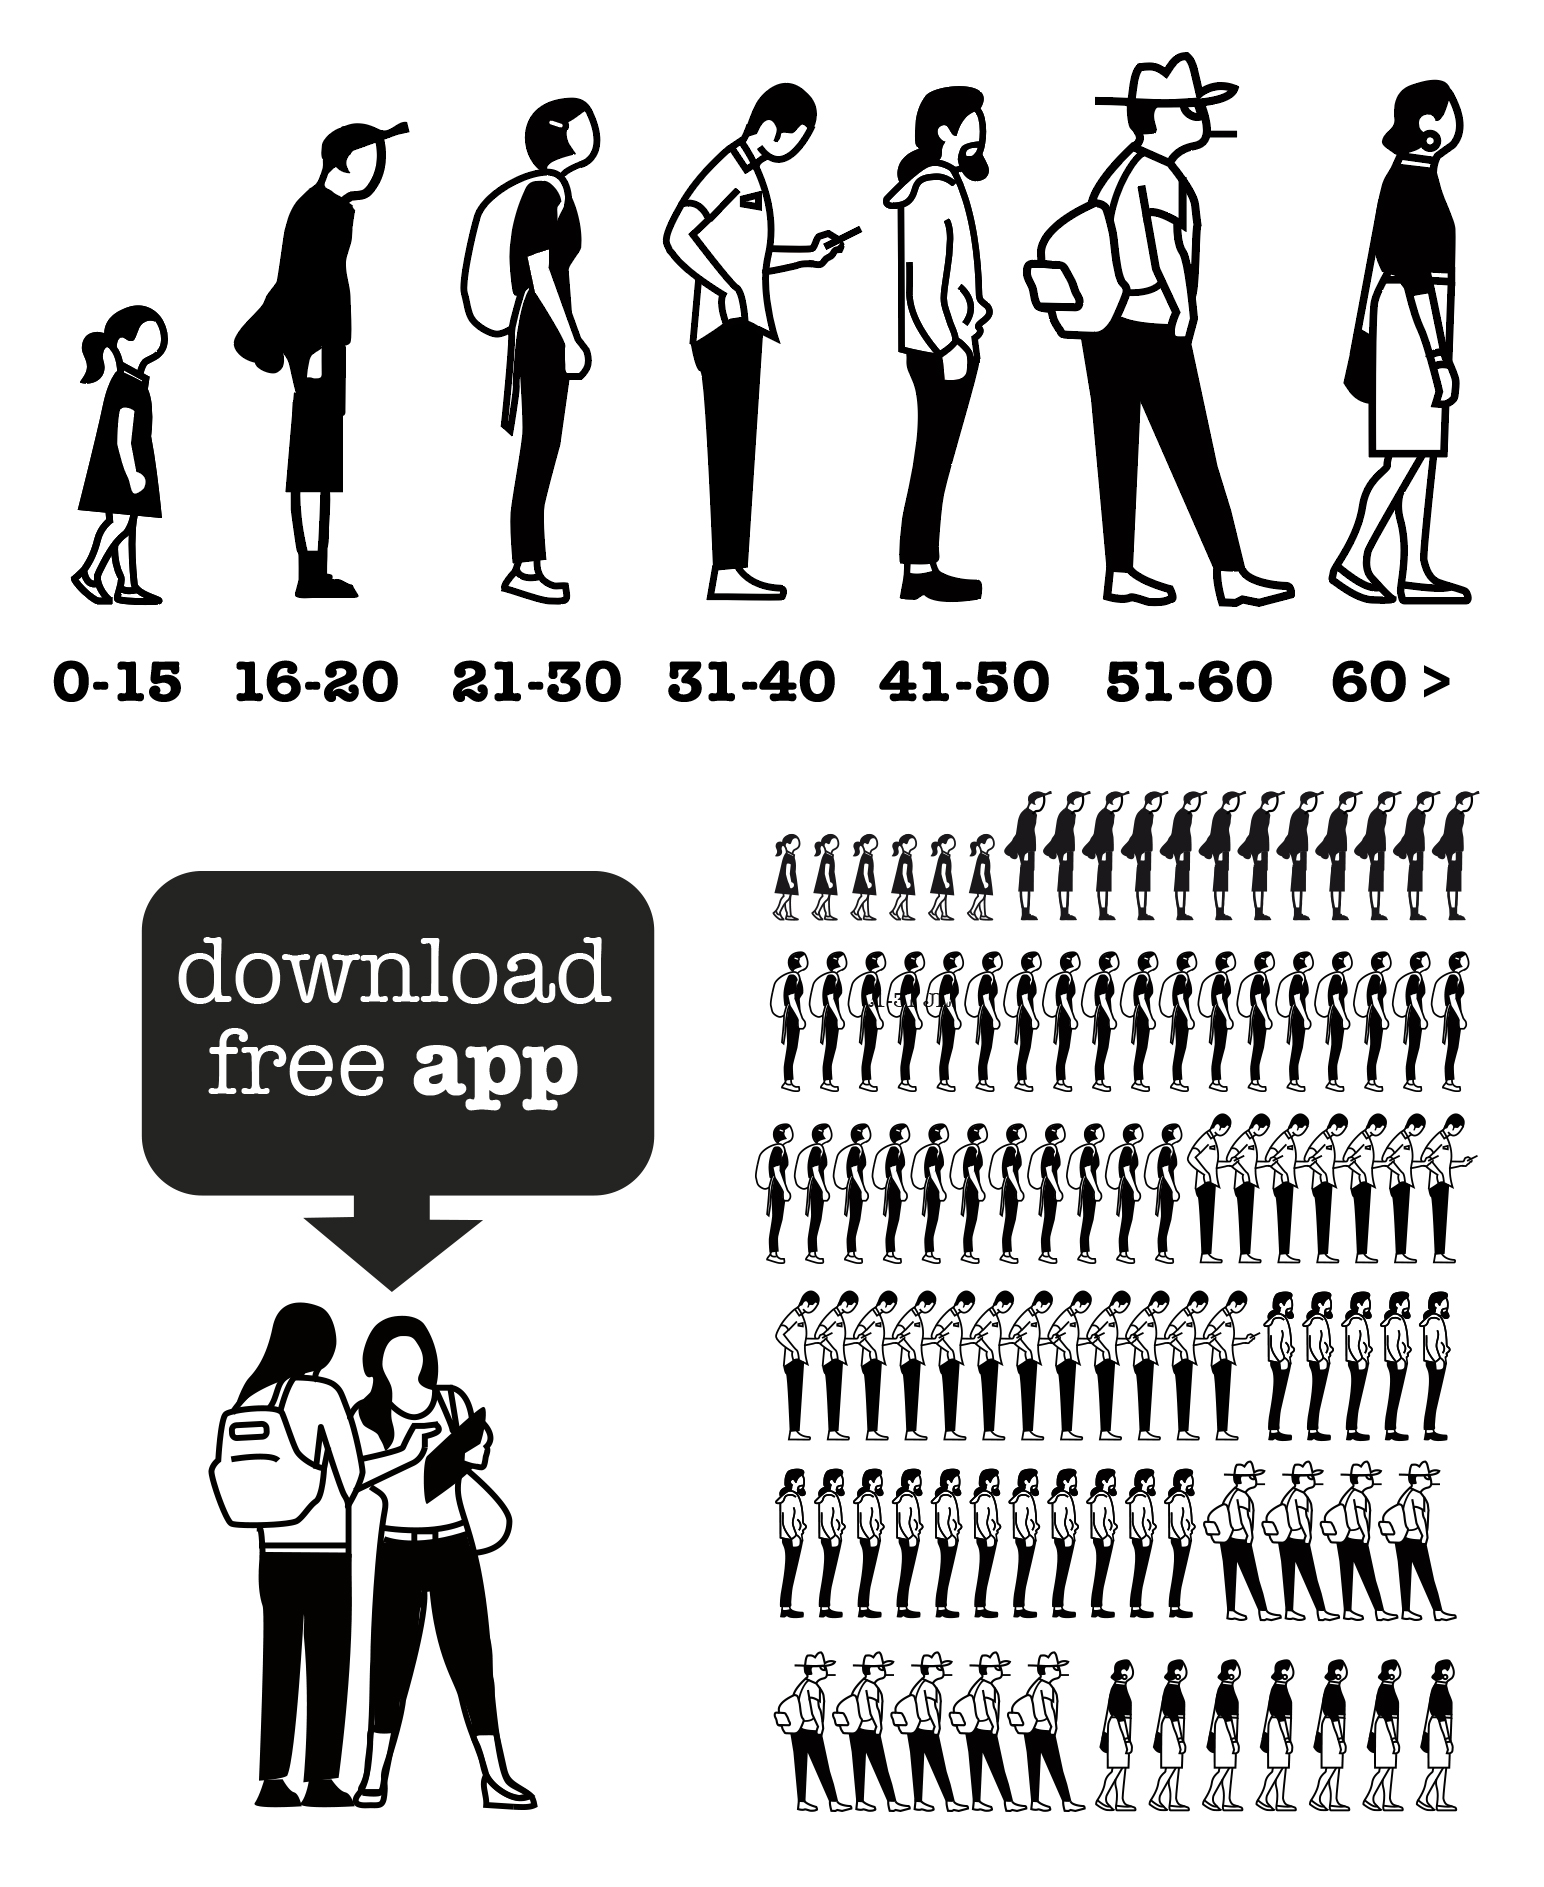 Gerd Arntz inspired statistics (2014) for the Anne Frank